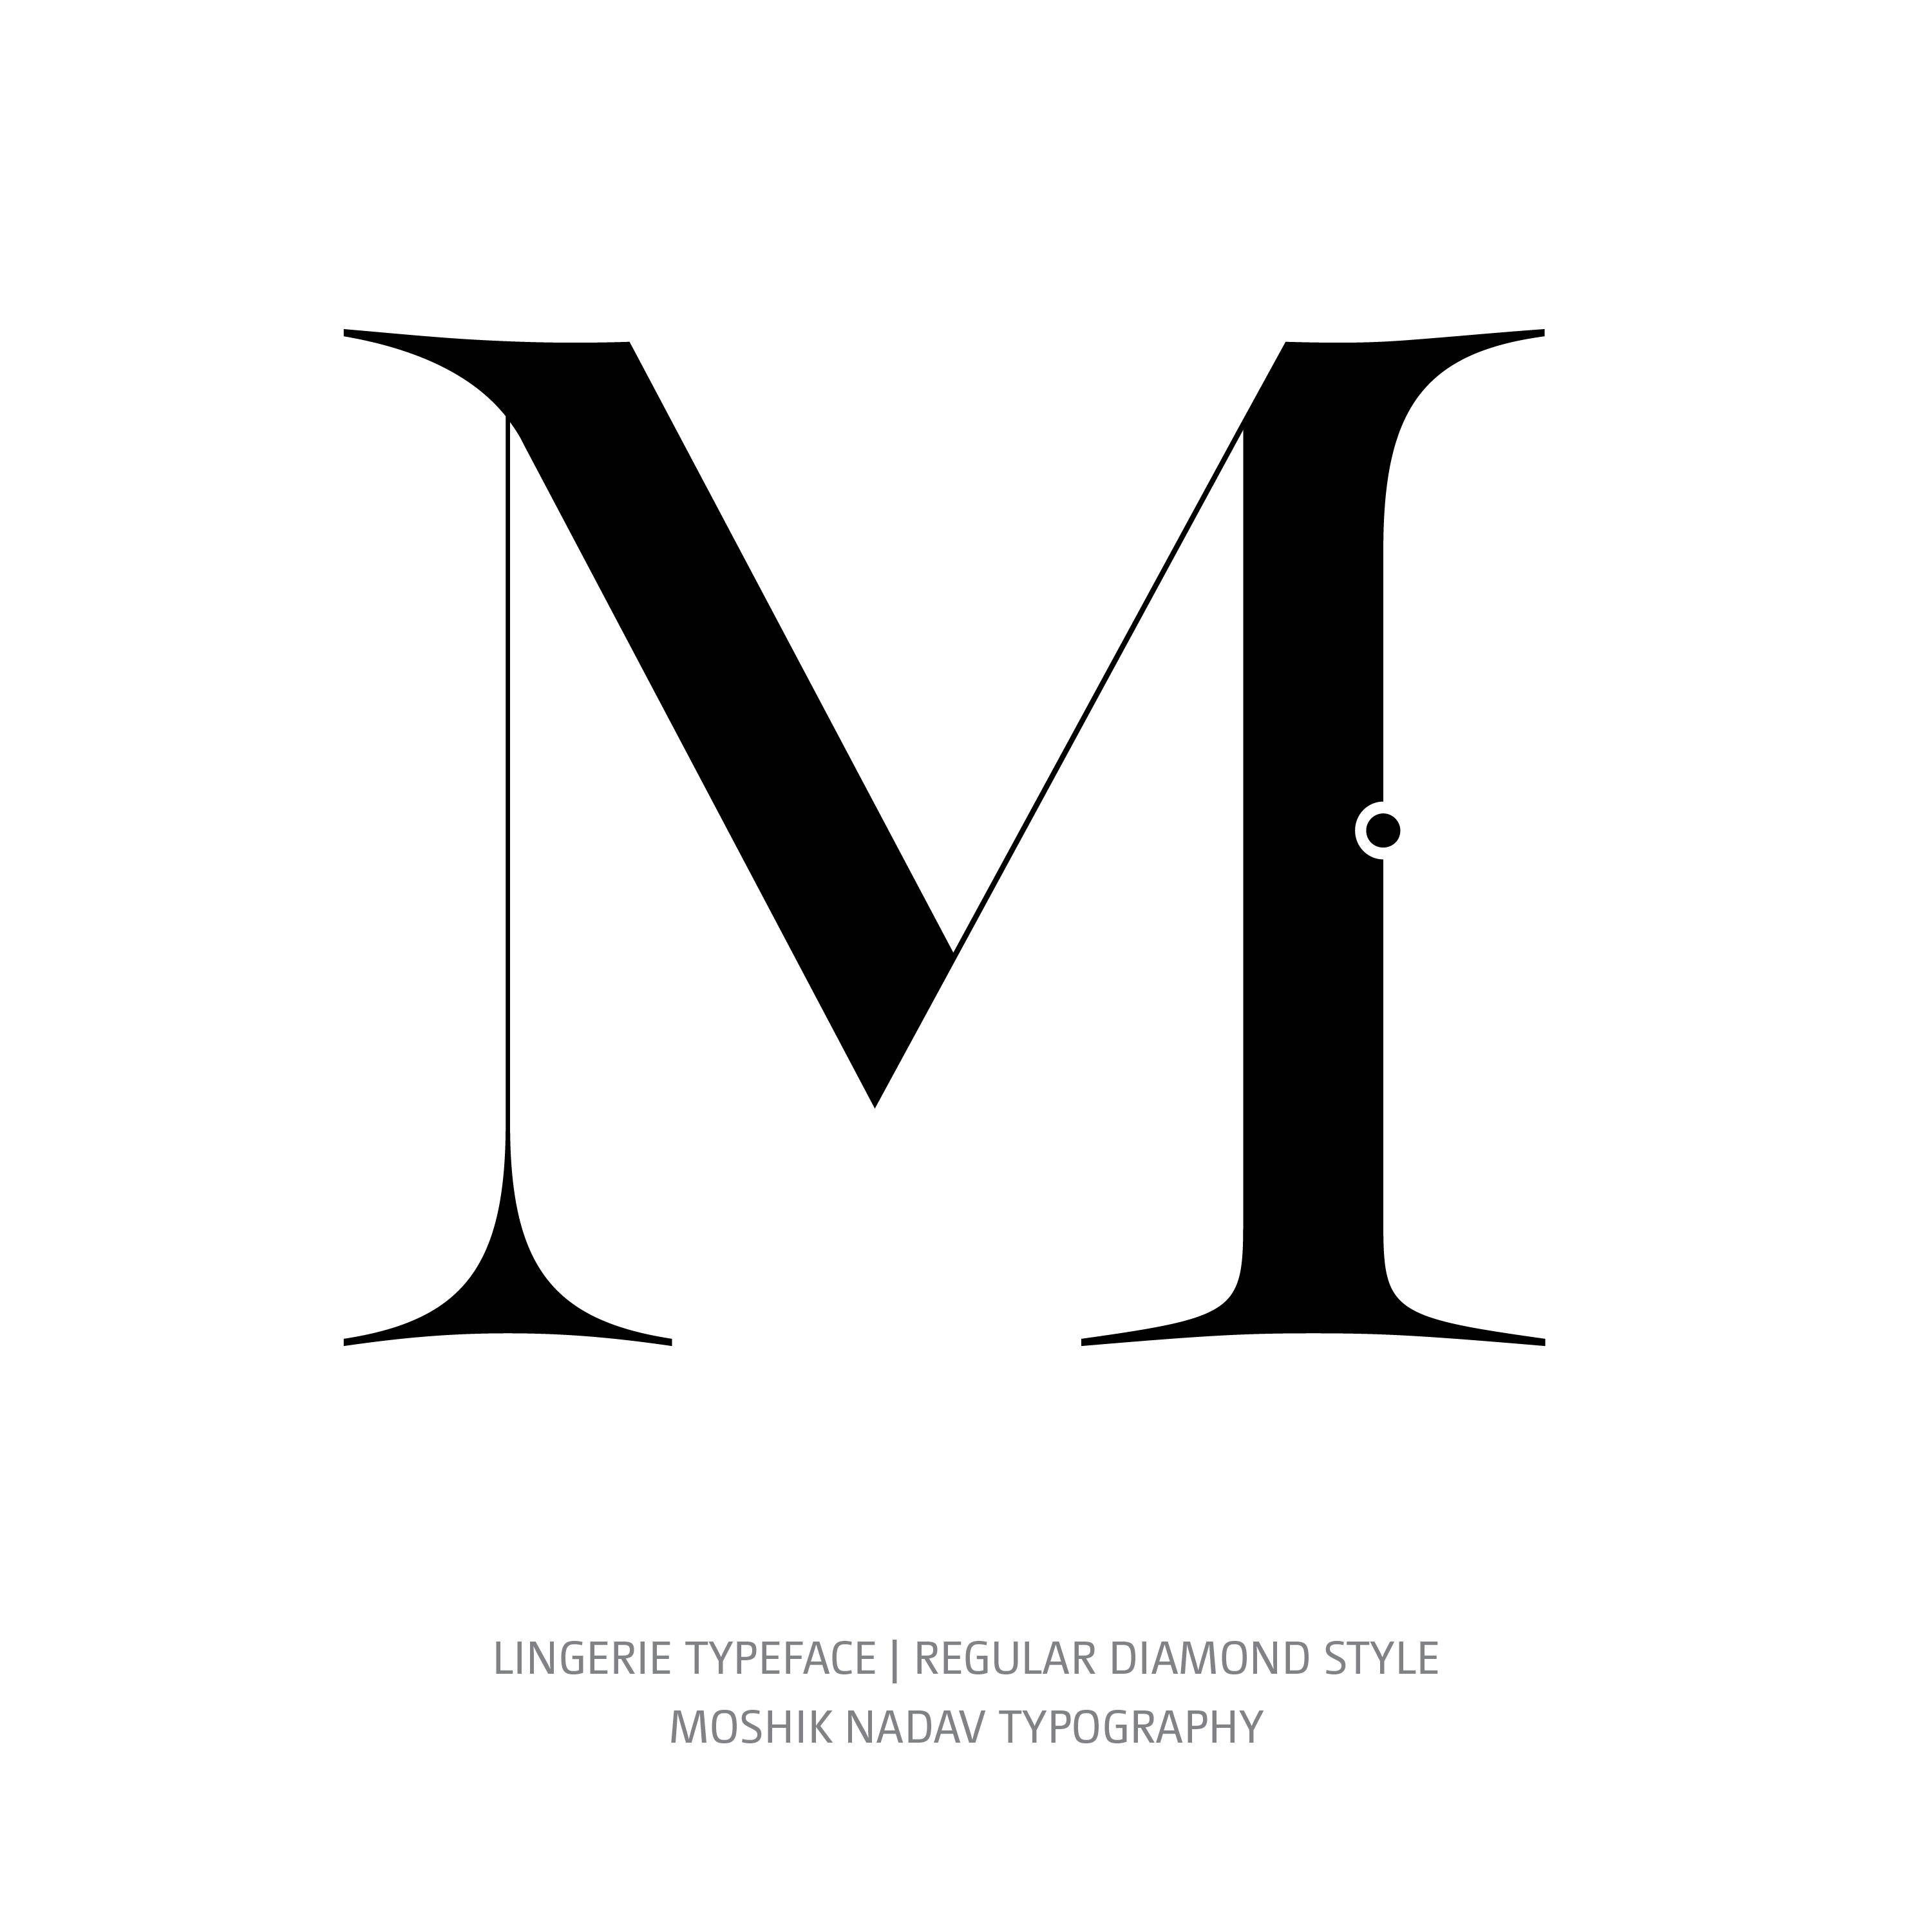 Lingerie Typeface Regular Diamond M